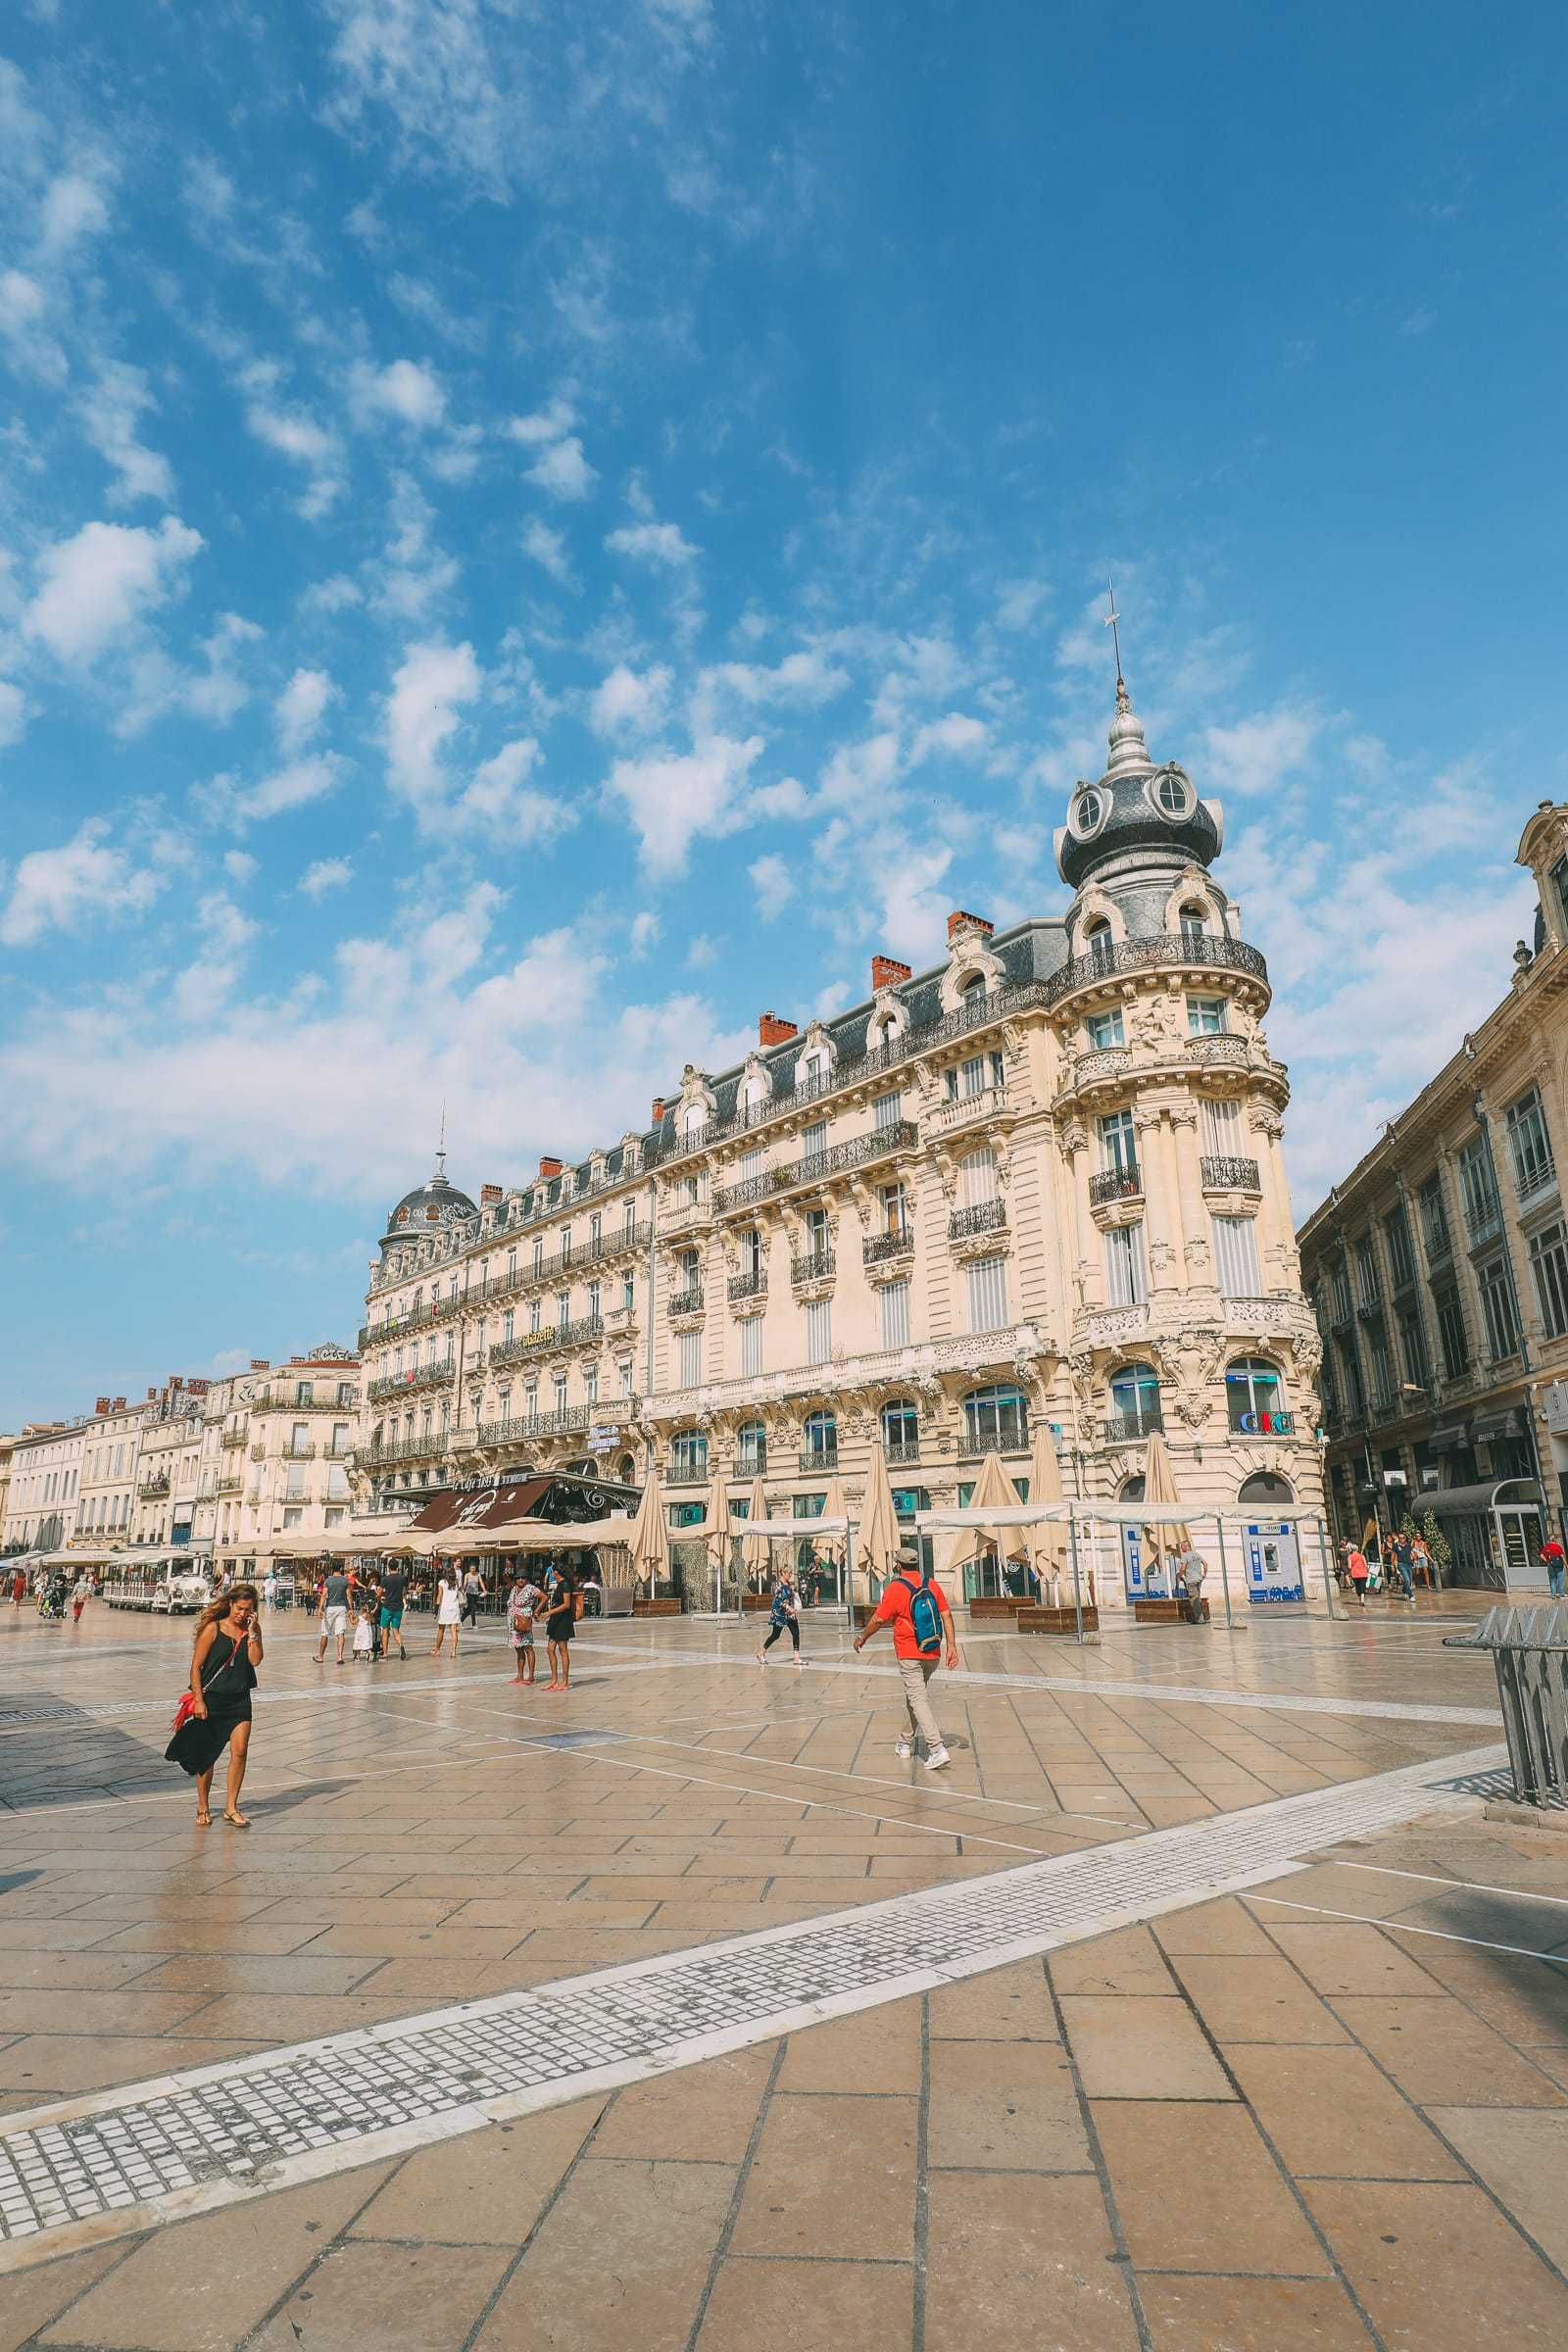 Finding Picasso And Soulages In Montpellier - The South Of France's Pretty City (2)